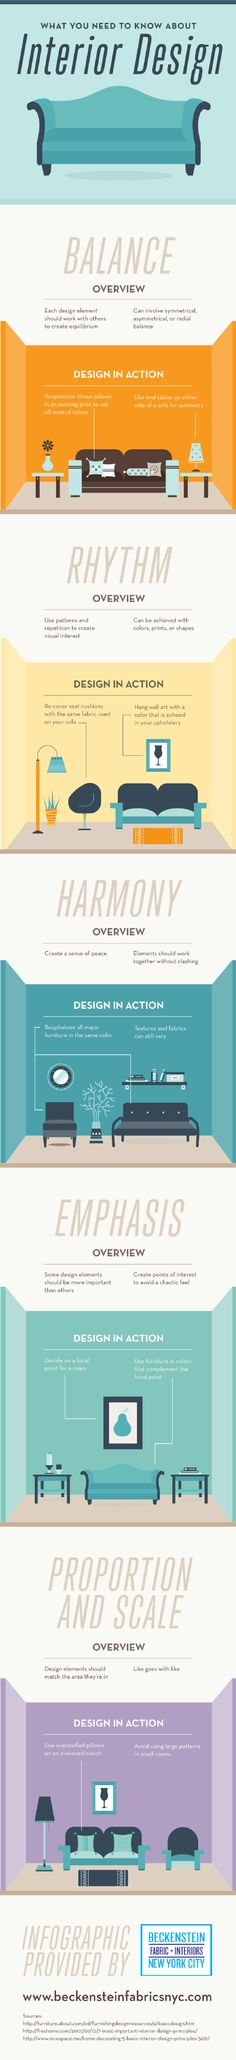 2. Pinterest (35-50 word description.) When it comes to interior design, some elements are more important than others! Homeowners should decide on a focal point for a room. Discover other decorating ideas by checking out this infographic from a fabric store in New York.